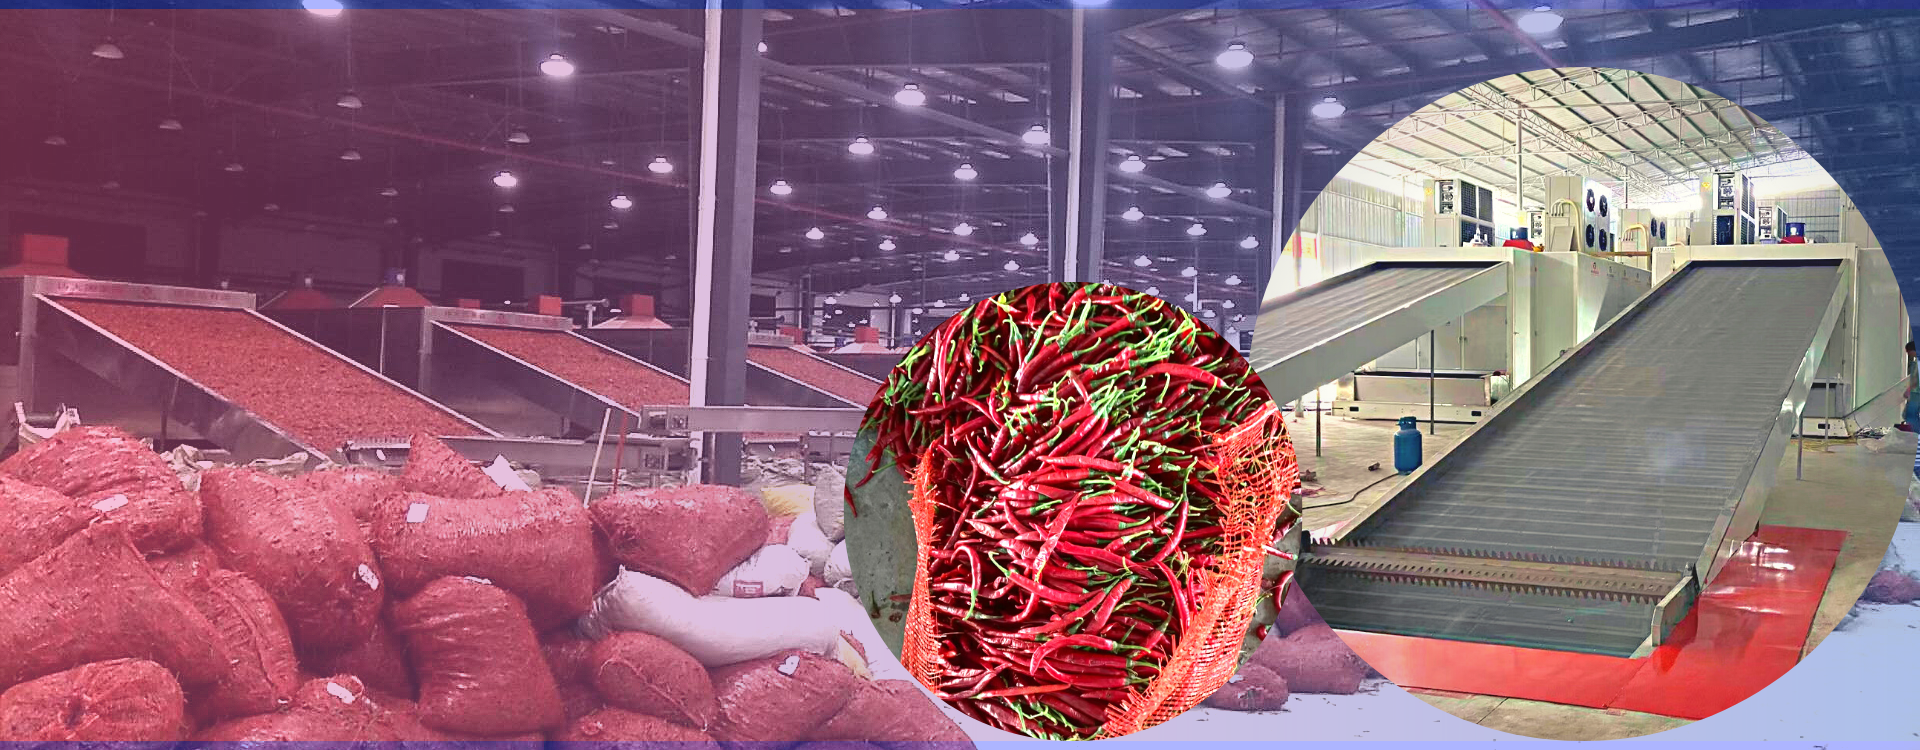 Continuous Conveyor Belt vegetable drying machine